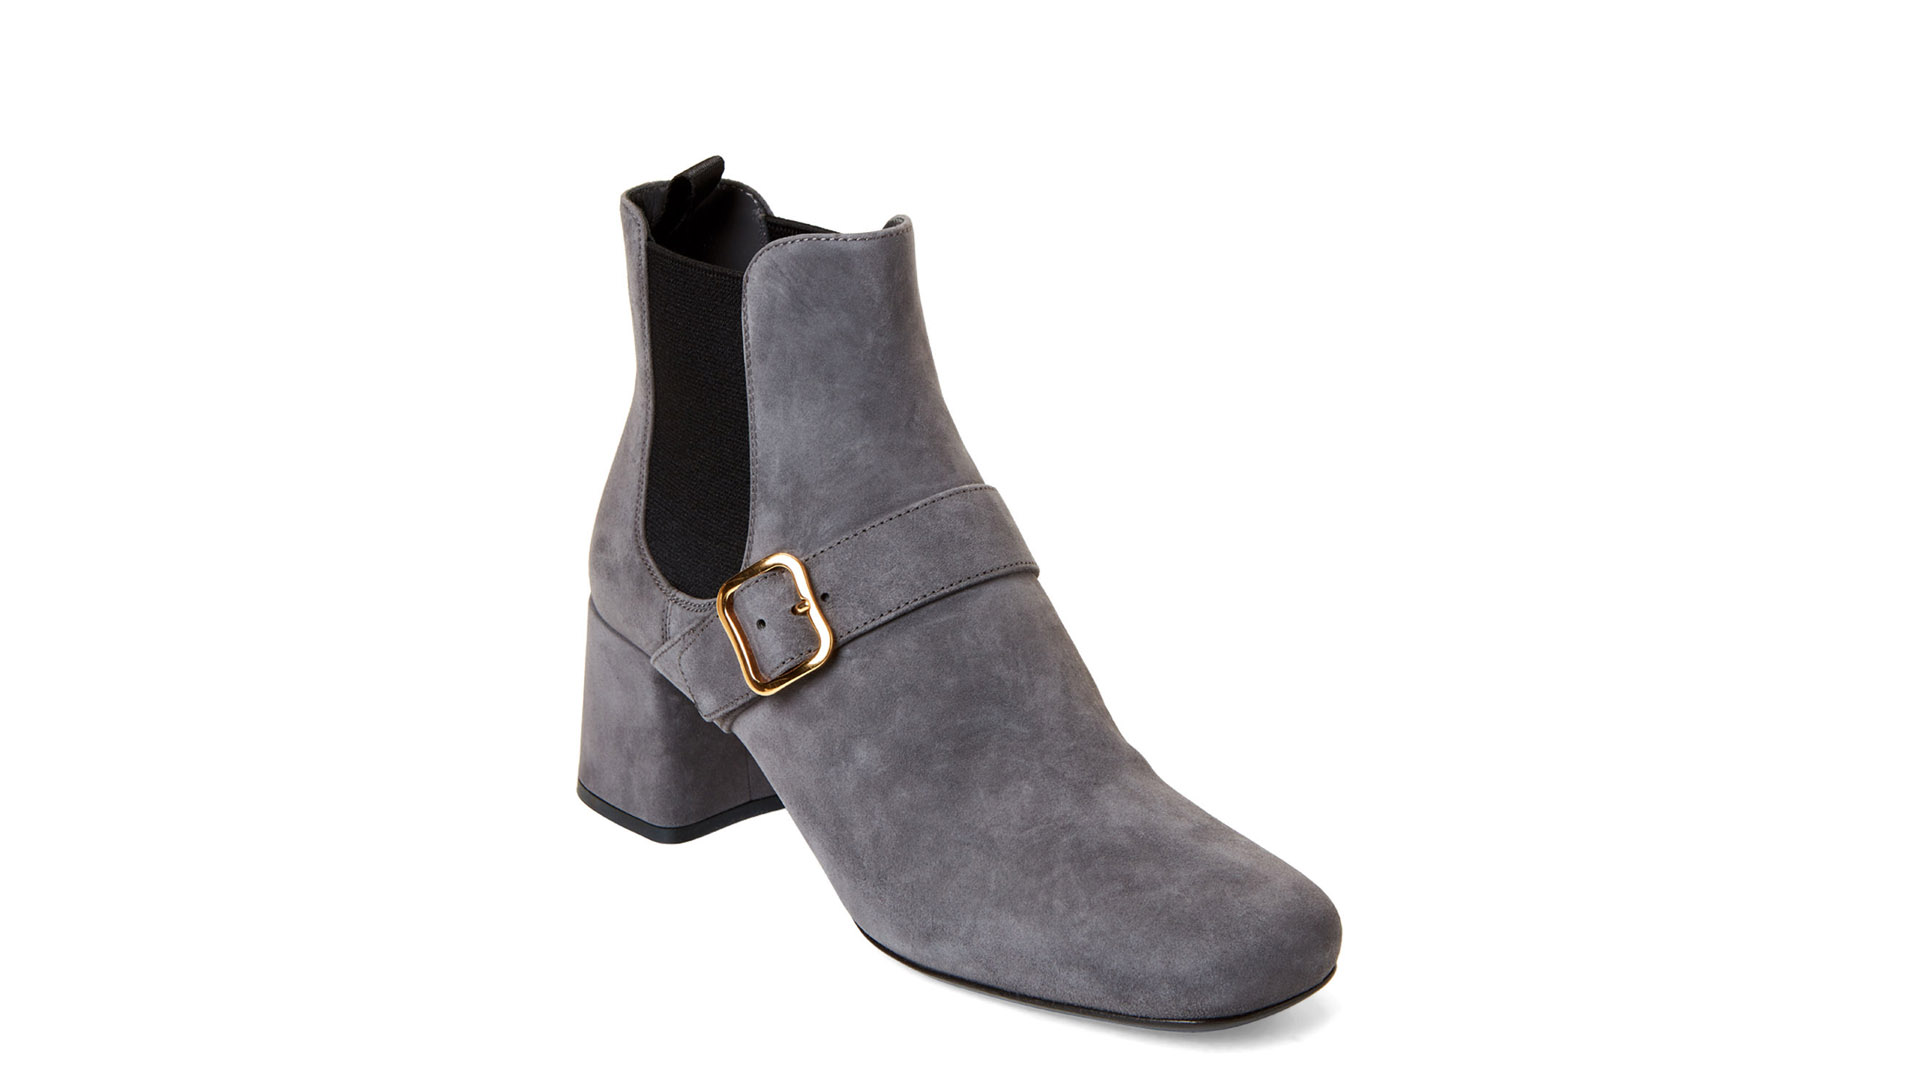 Prada Designer Shoes Grey Black Buckle Accent Suede Boots Over 50% OFF